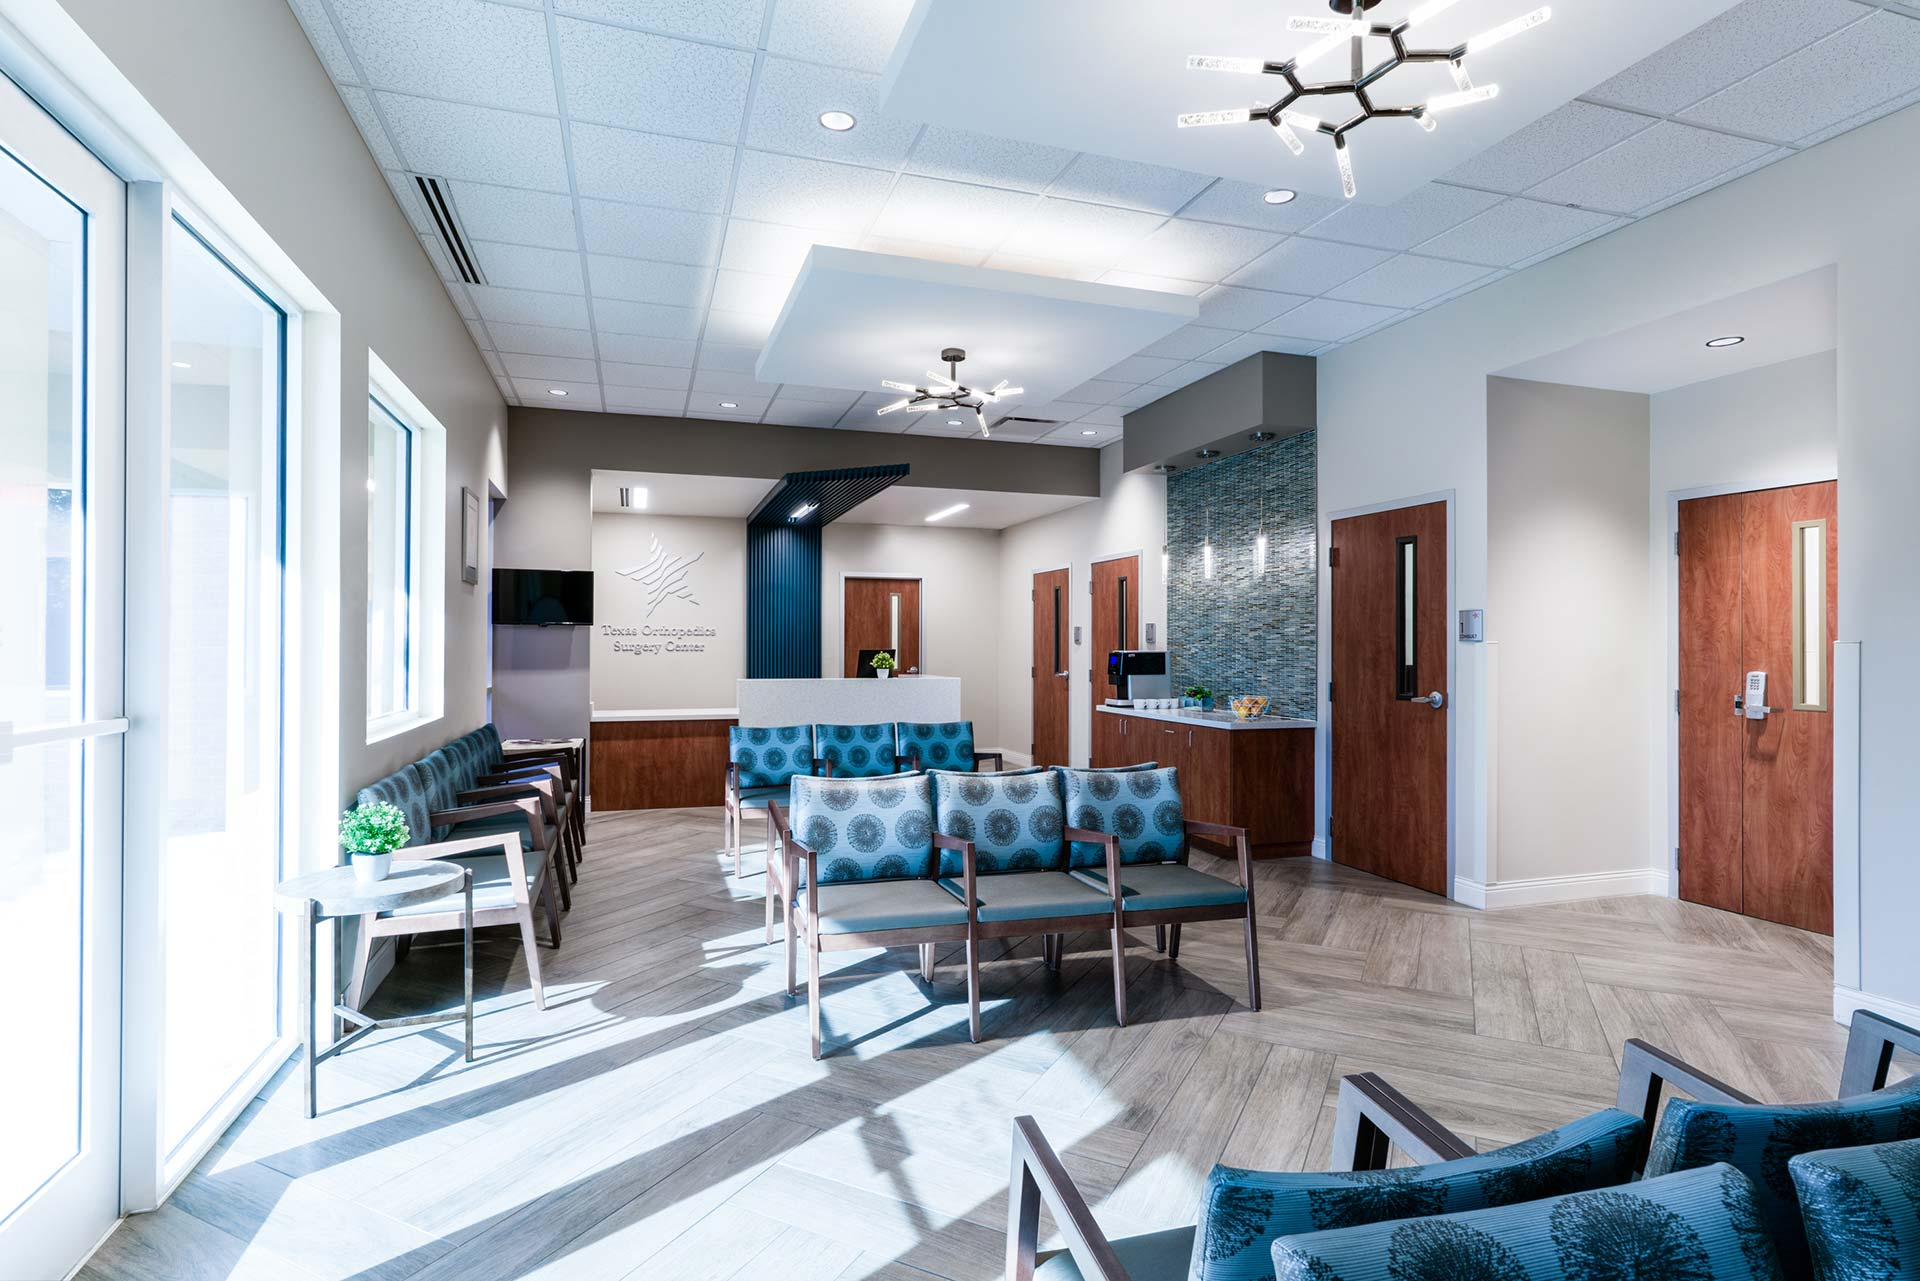 Austin Texas Commercial Real Estate Medical Office Space